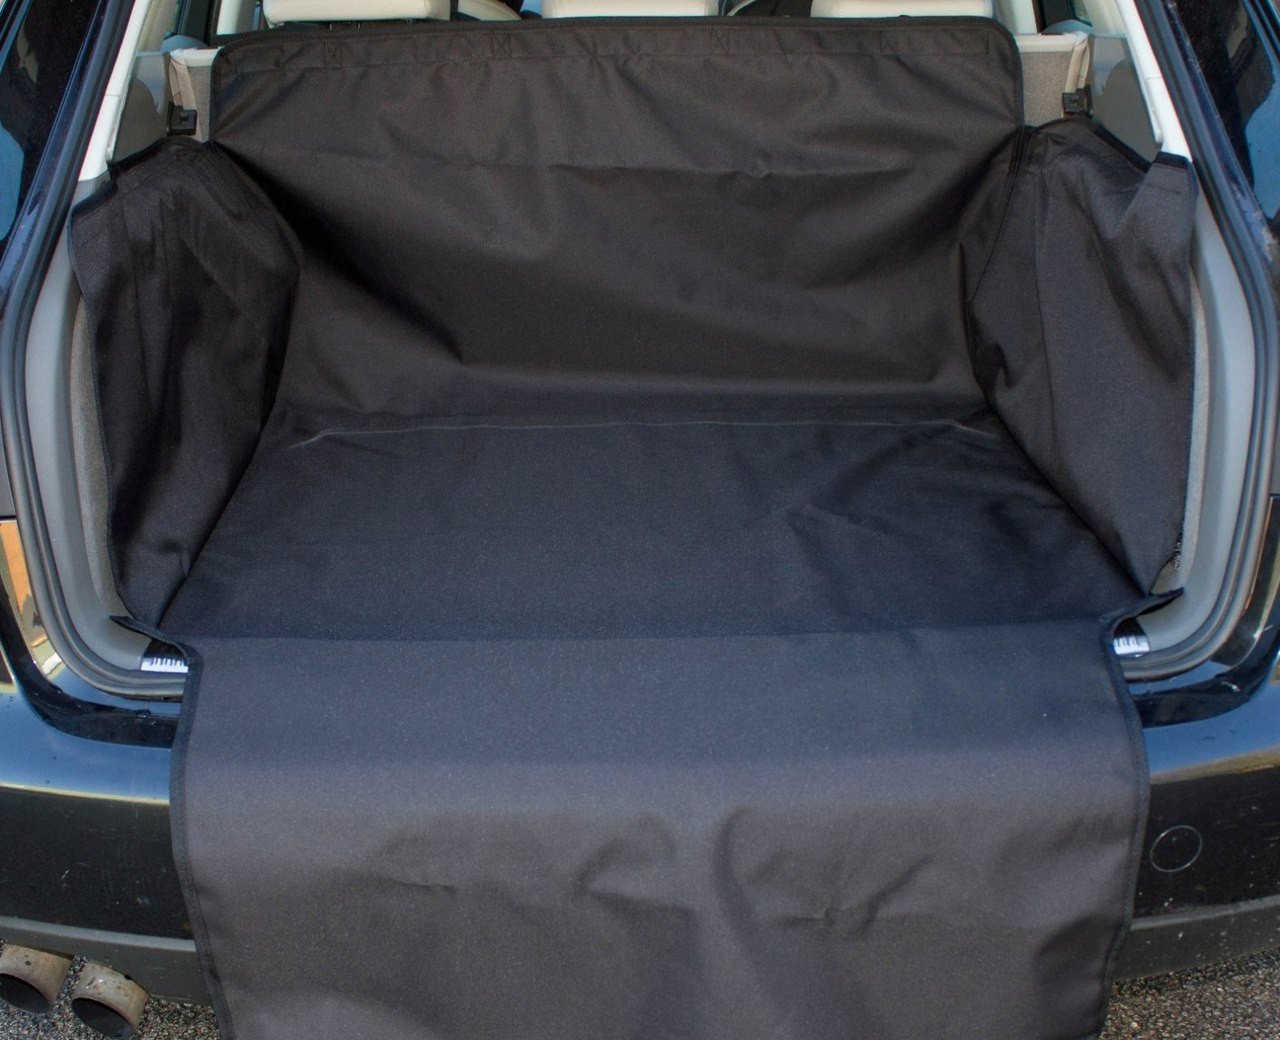 Car boot liner cover suitable for 5 door Mitsubishi Outlander year 2005 onwards